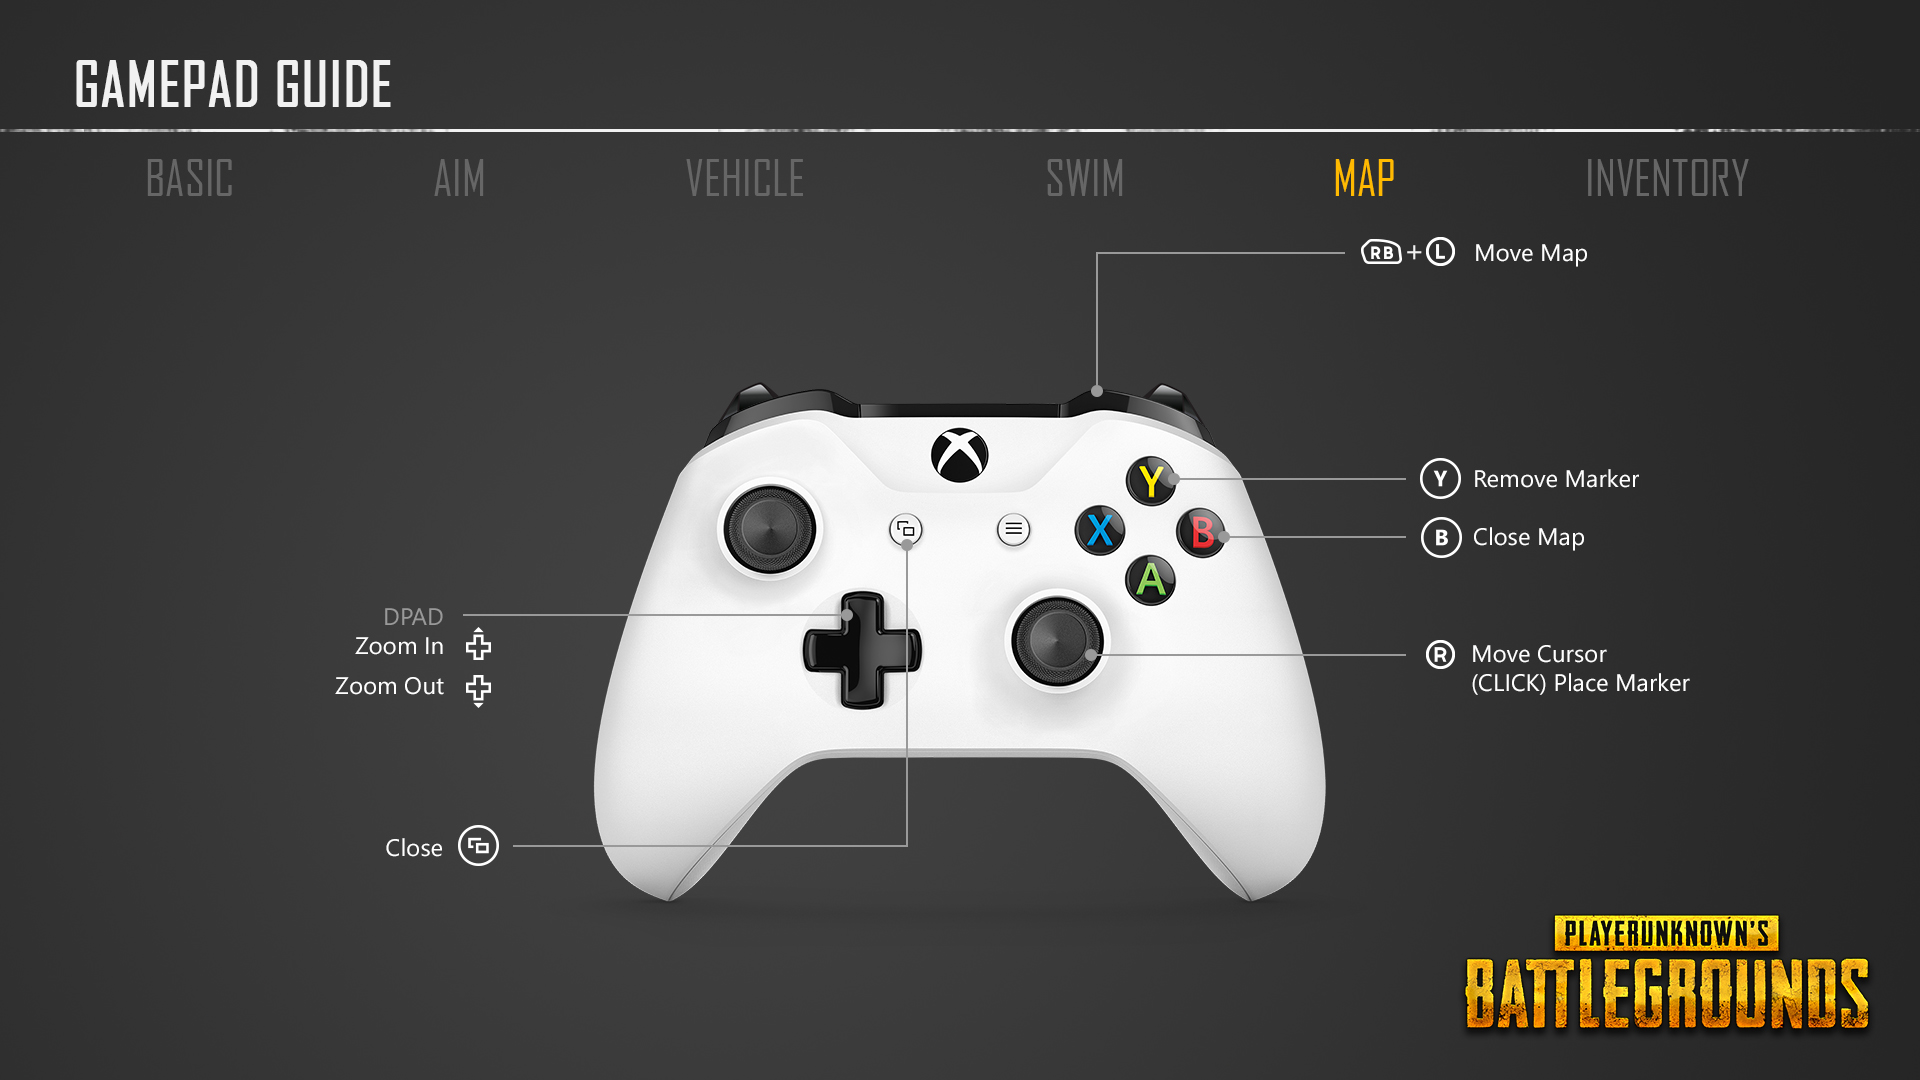 Playerunknown S Battlegrounds For Xbox Controls Revealed: PlayerUnknown's Battlegrounds Controller Layout And